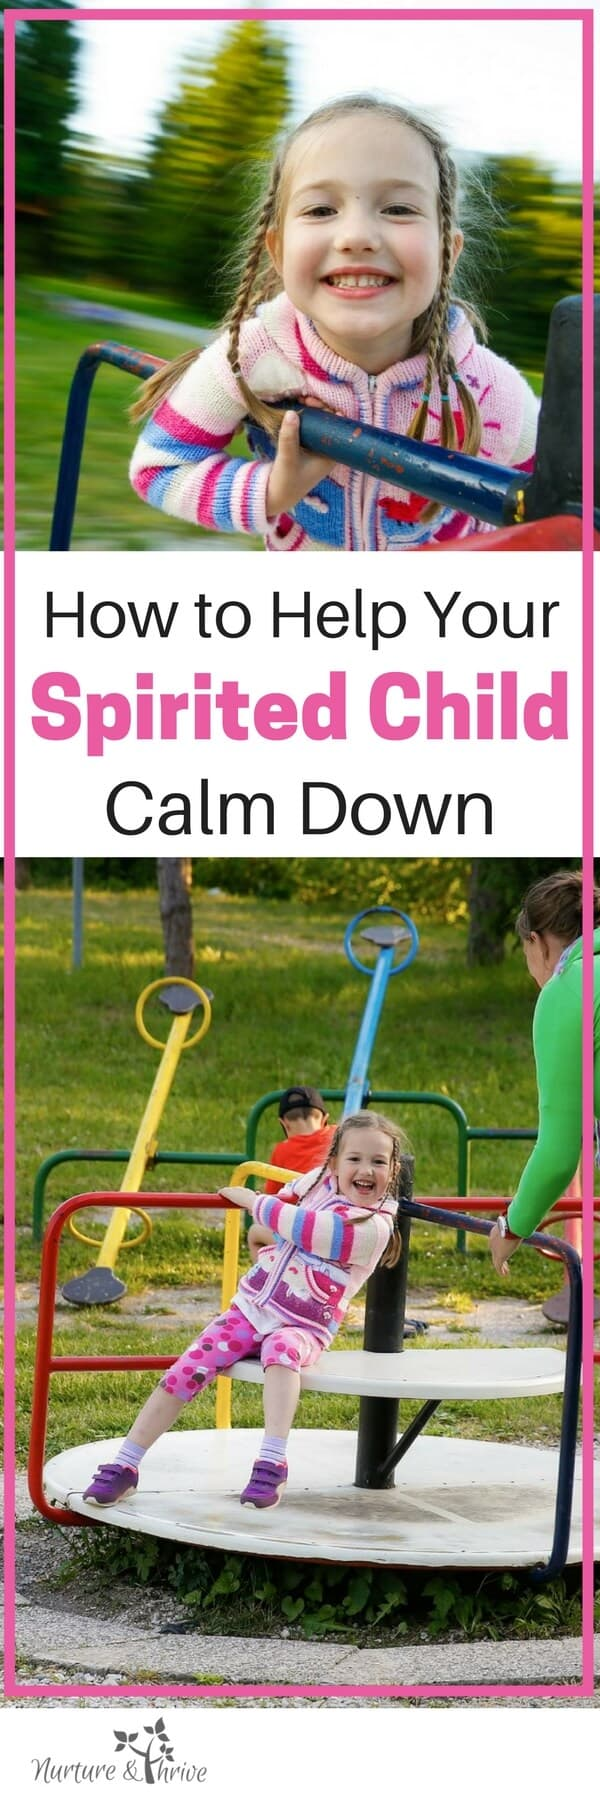 Great tip to help your high energy child reset and go on playing. Help your child play in a calm way without suppressing their excitement. How to help your highly spirited child calm down in a playful way! #spiritedchild #intensity #playfulparenting #positiveparenting